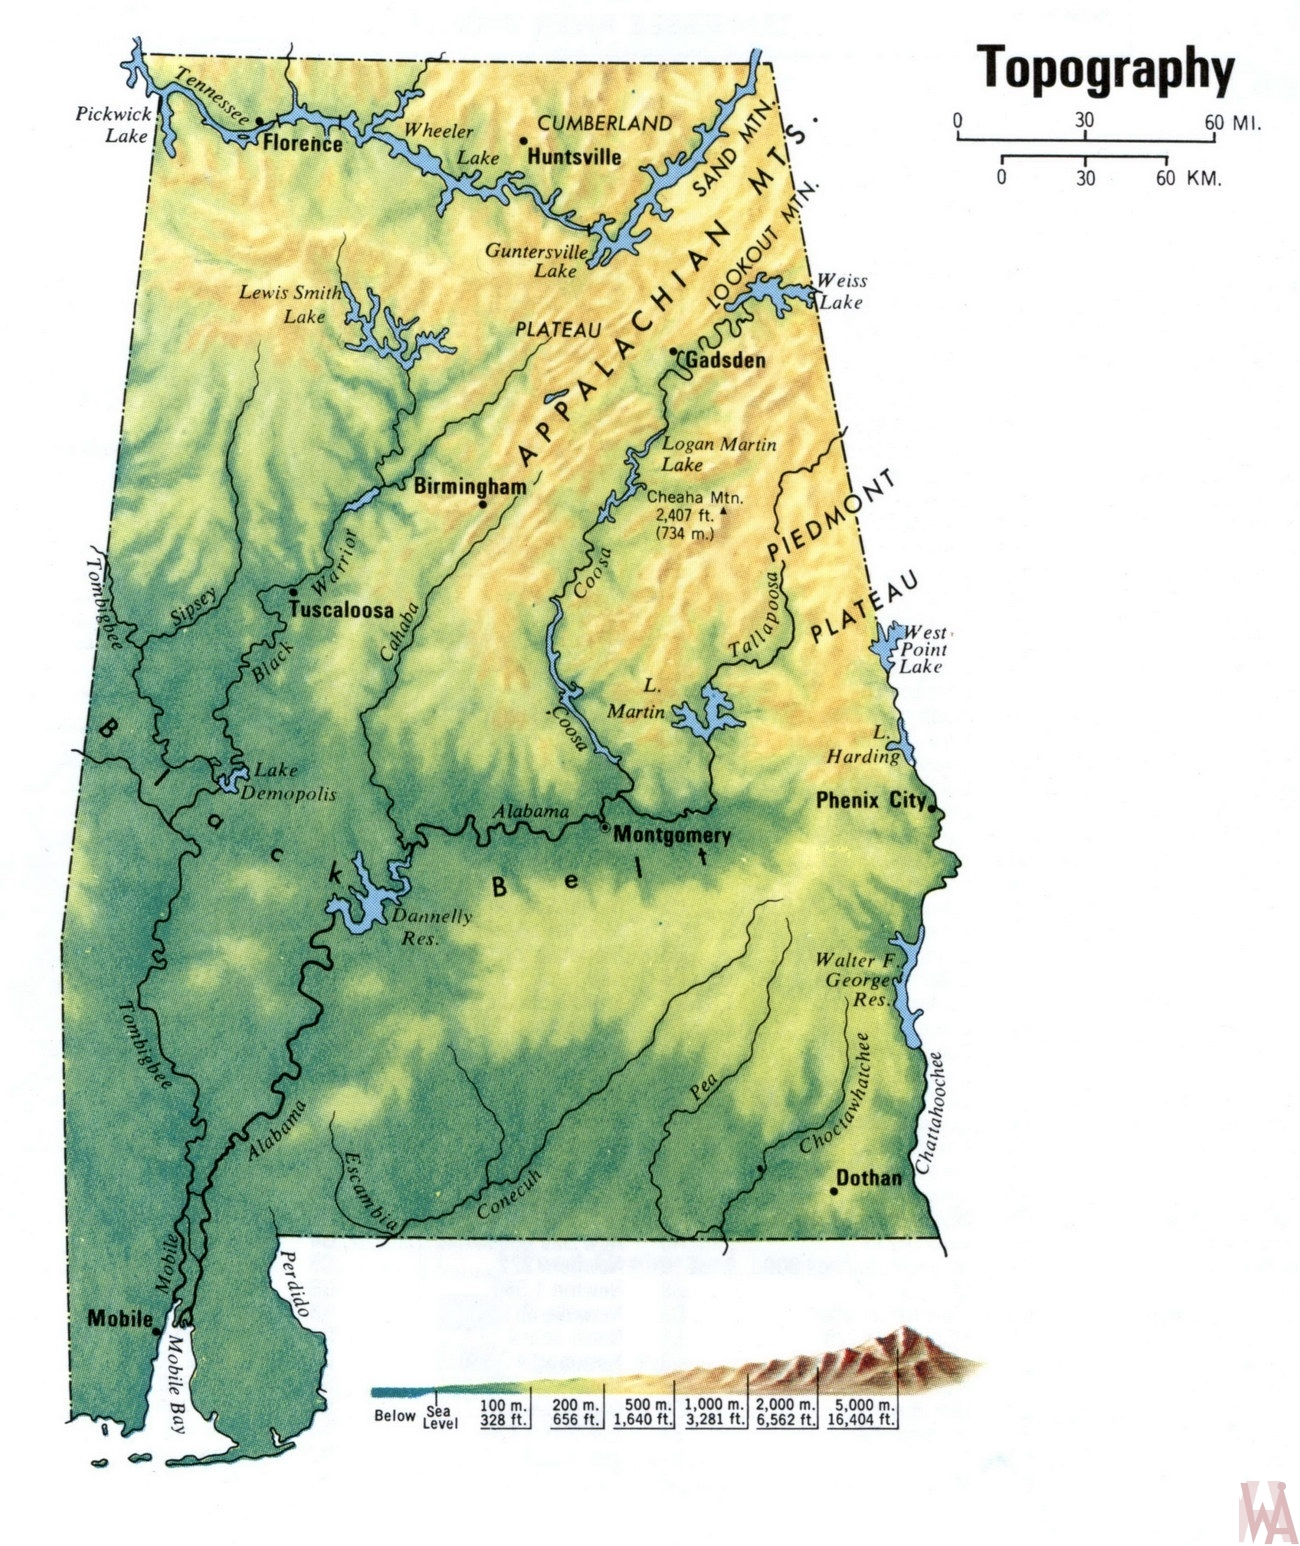 Alabama Topography Map | Topography Map of Alabama | WhatsAnswer on topological map of alabama, detailed map of alabama, poverty map of alabama, seismic map of alabama, map of mountains in alabama, demographic map of alabama, world map of alabama, contour map of alabama, latitude of alabama, political map of alabama, water of alabama, mapquest map of alabama, vegetation map of alabama, atlas map of alabama, large map of alabama, road map of alabama, hiking map of alabama, topo of alabama, geologic map of alabama, tourist map of alabama,